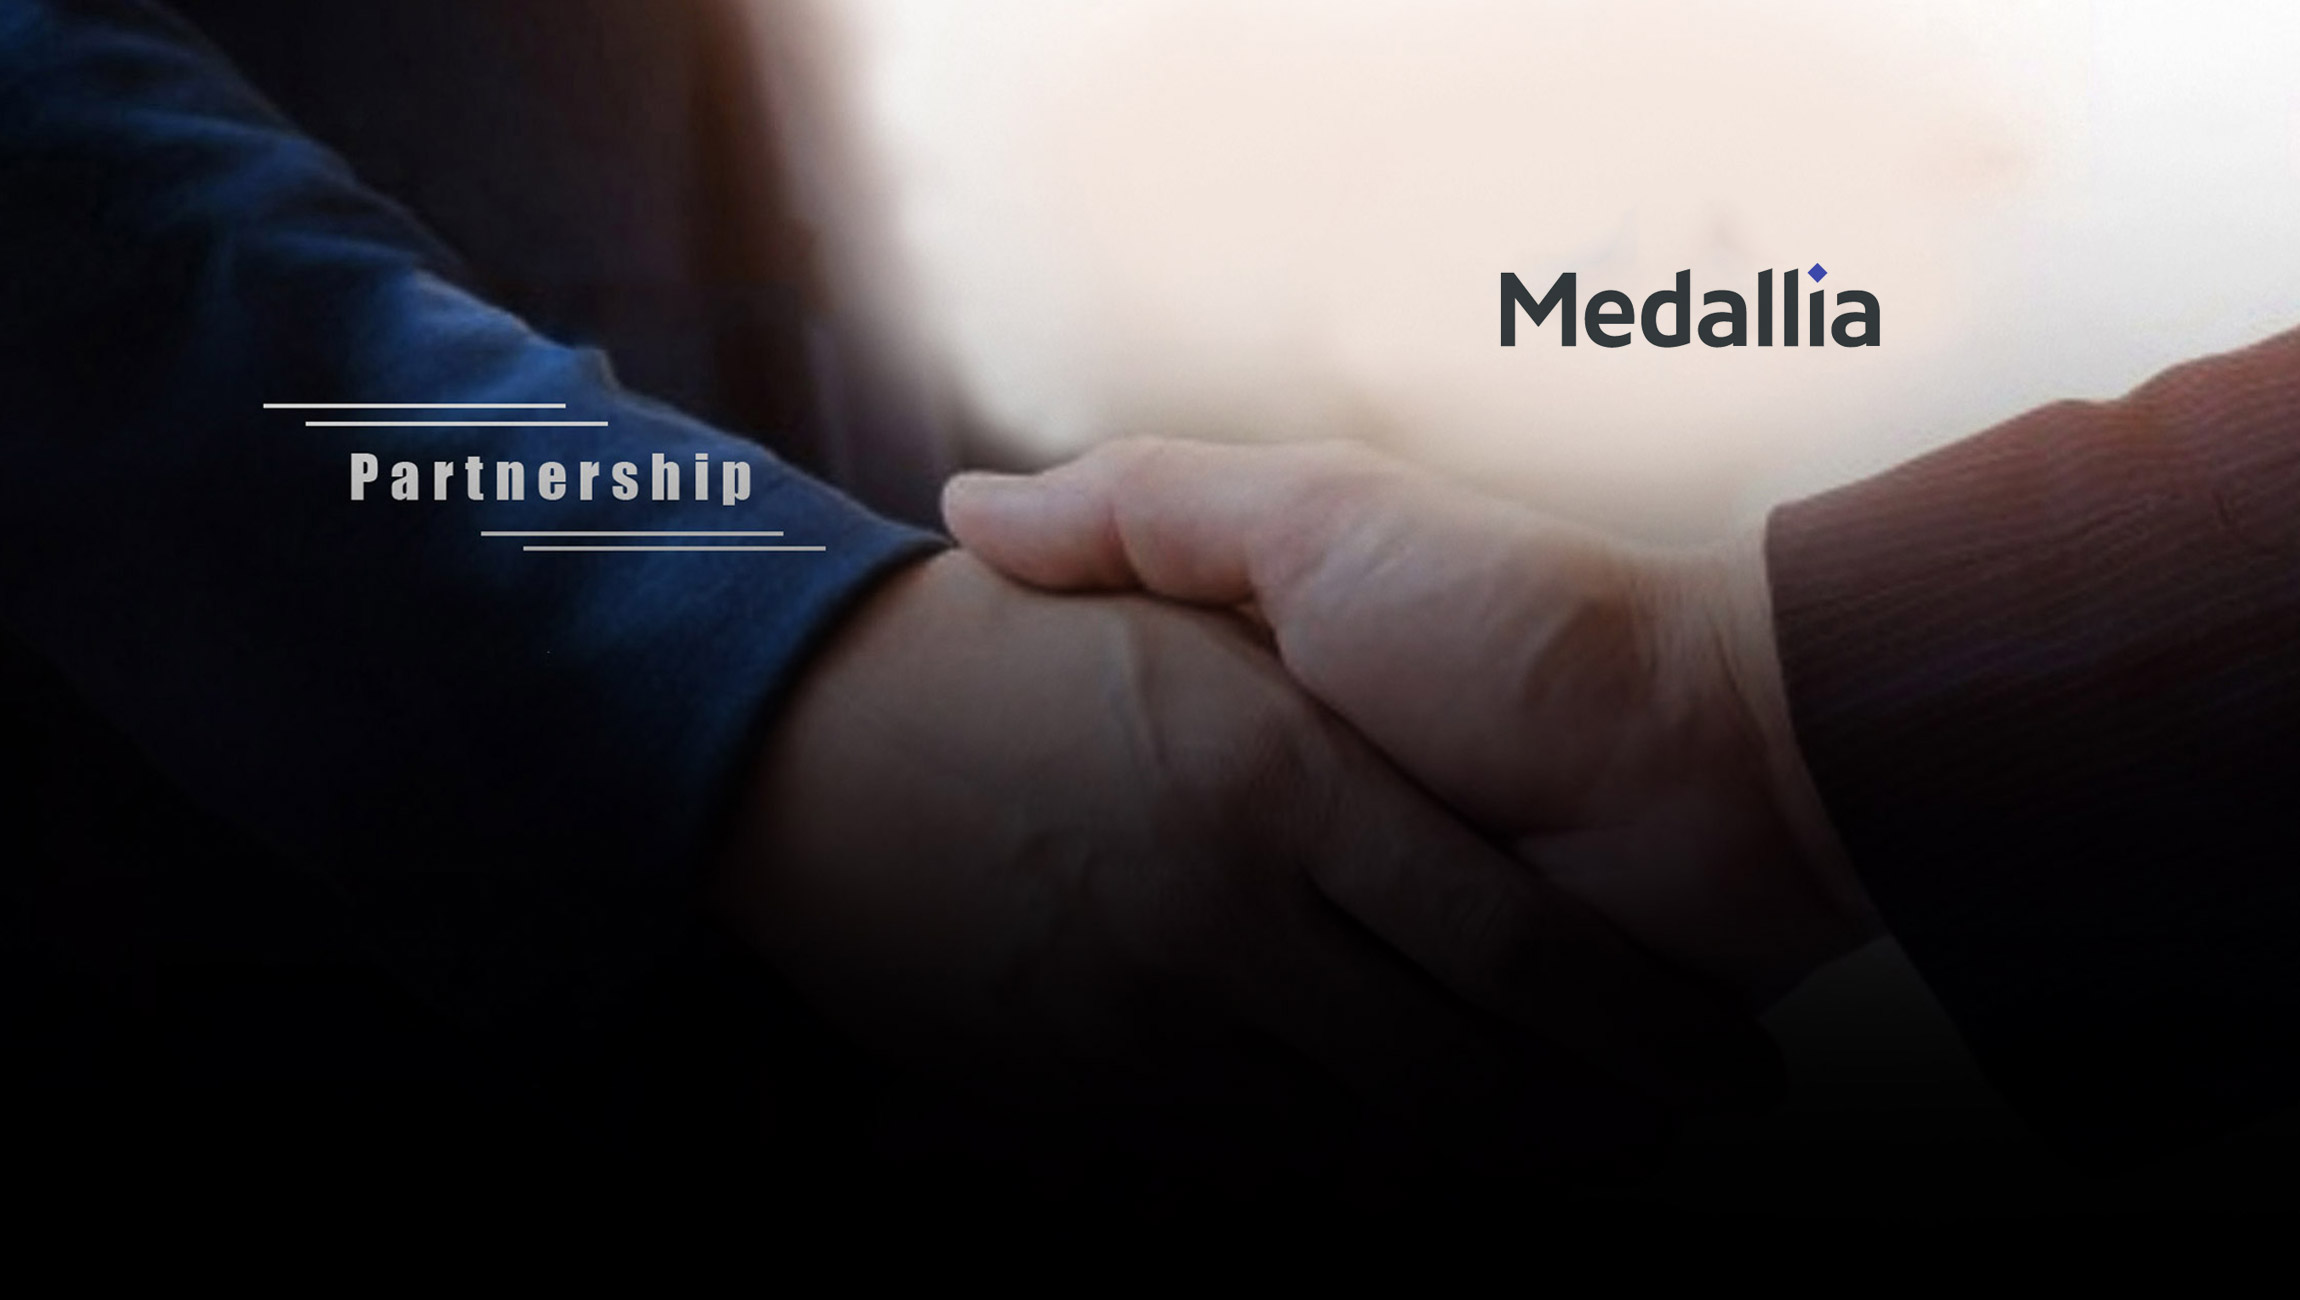 Southwestern Health Resources Chooses Medallia for Experience Management